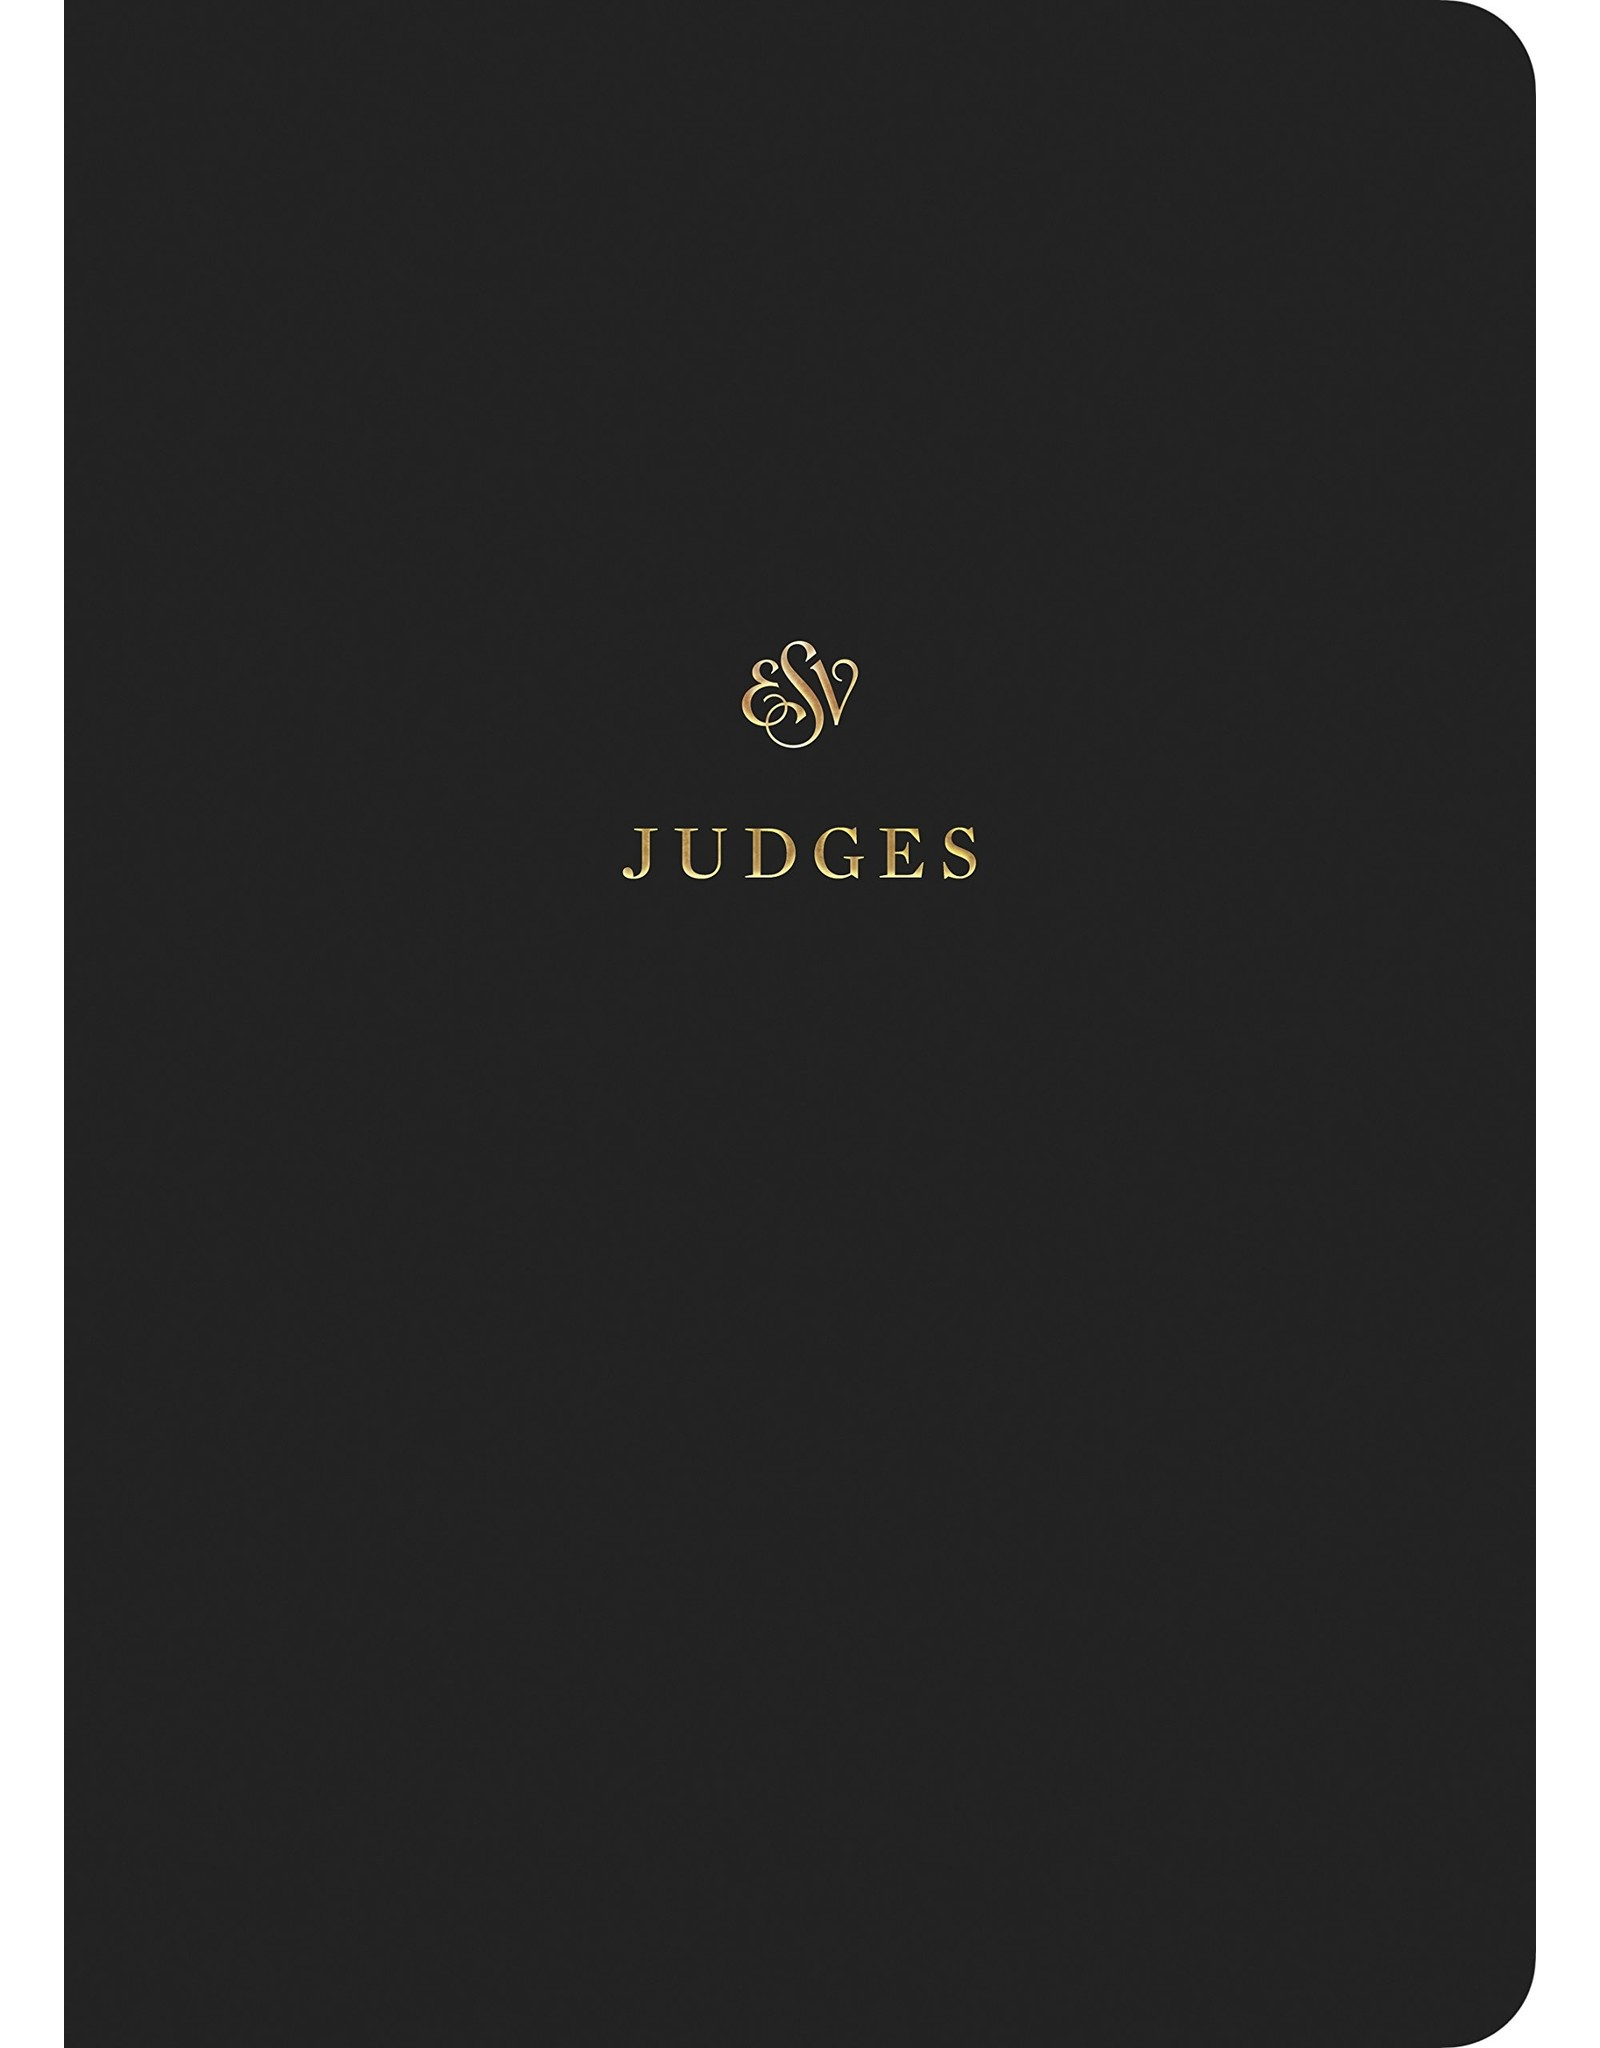 ESV Scriptural Journal: Judges